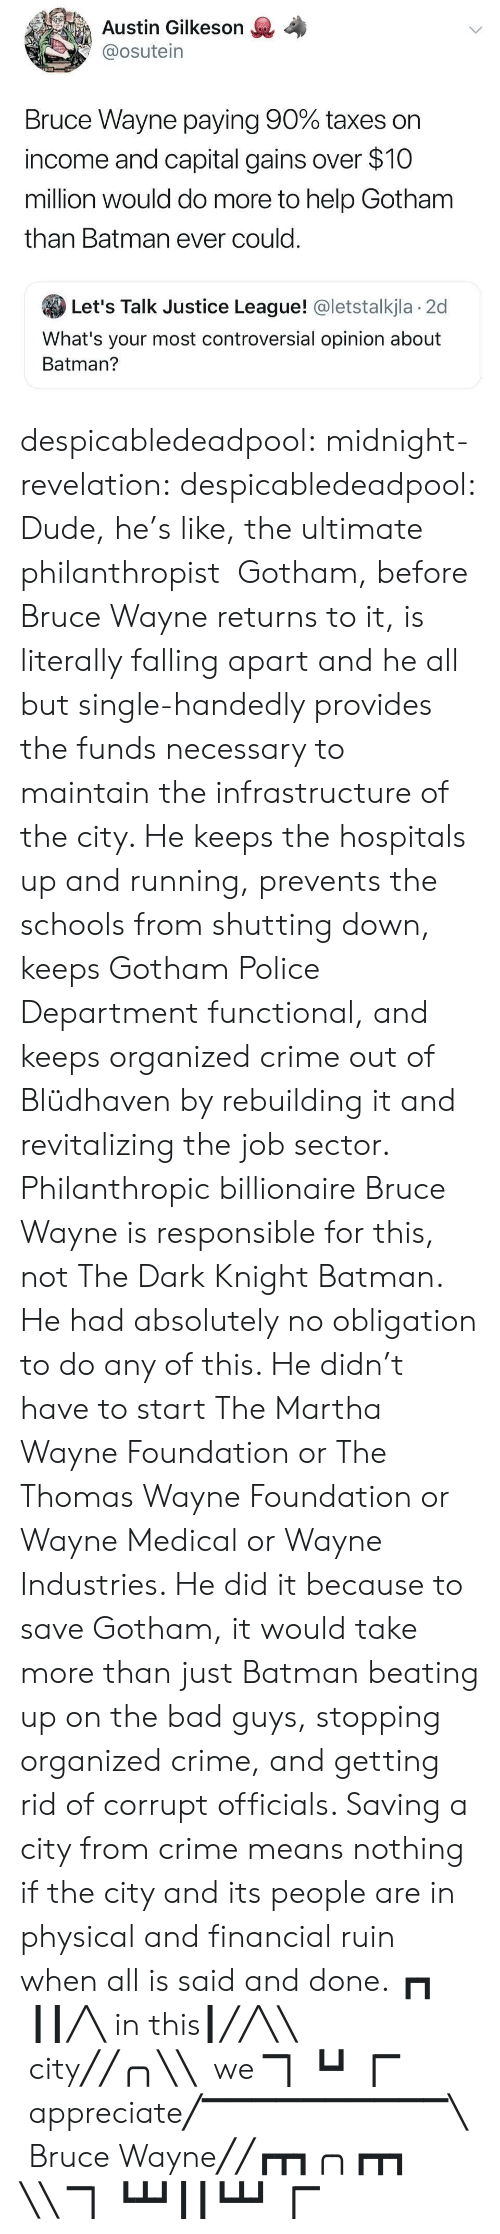 Physical: Austin Gilkeson  @osutein  Bruce Wayne paying 90% taxes on  income and capital gains over $10  million would do more to help Gotham  than Batman ever could.  Let's Talk Justice League! @letstalkjla 2d  What's your most controversial opinion about  Batman? despicabledeadpool:  midnight-revelation: despicabledeadpool:  Dude, he's like, the ultimate philanthropist   Gotham, before Bruce Wayne returns to it, is literally falling apart and he all but single-handedly provides the funds necessary to maintain the infrastructure of the city. He keeps the hospitals up and running, prevents the schools from shutting down, keeps Gotham Police Department functional, and keeps organized crime out of Blüdhaven by rebuilding it and revitalizing the job sector. Philanthropic billionaire Bruce Wayne is responsible for this, not The Dark Knight Batman. He had absolutely no obligation to do any of this. He didn't have to start The Martha Wayne Foundation or The Thomas Wayne Foundation or Wayne Medical or Wayne Industries. He did it because to save Gotham, it would take more than just Batman beating up on the bad guys, stopping organized crime, and getting rid of corrupt officials. Saving a city from crime means nothing if the city and its people are in physical and financial ruin when all is said and done.  ┏┓  ┃┃╱╲ in this┃╱╱╲╲  city╱╱╭╮╲╲  we ▔▏┗┛▕▔    appreciate╱▔▔▔▔▔▔▔▔▔▔╲  Bruce Wayne╱╱┏┳┓╭╮┏┳┓ ╲╲ ▔▏┗┻┛┃┃┗┻┛▕▔